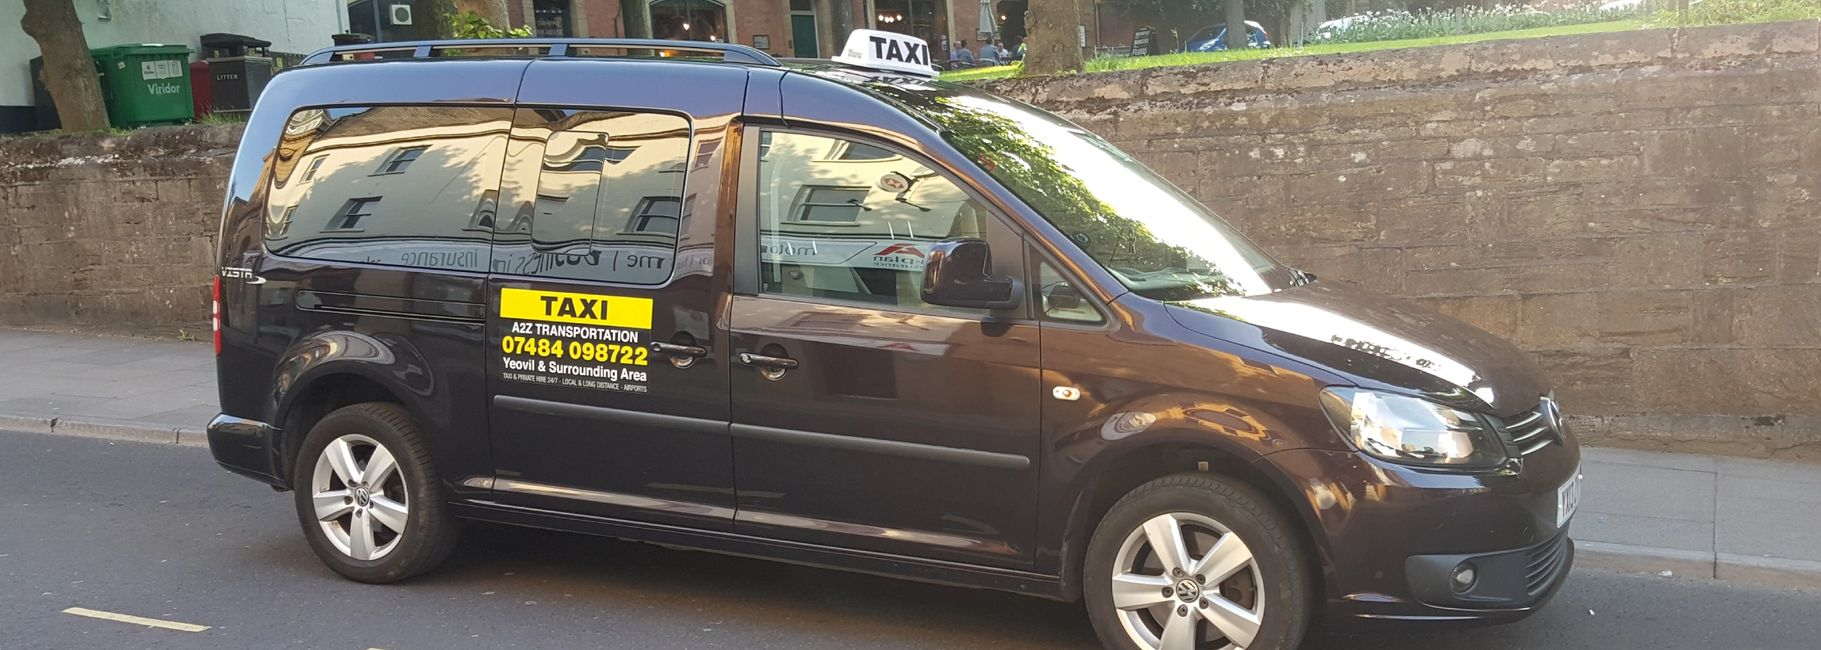 taxi service.cab service.local cabs.taxis near me.best taxi firms.7 seater taxis.reliable taxis.taxi